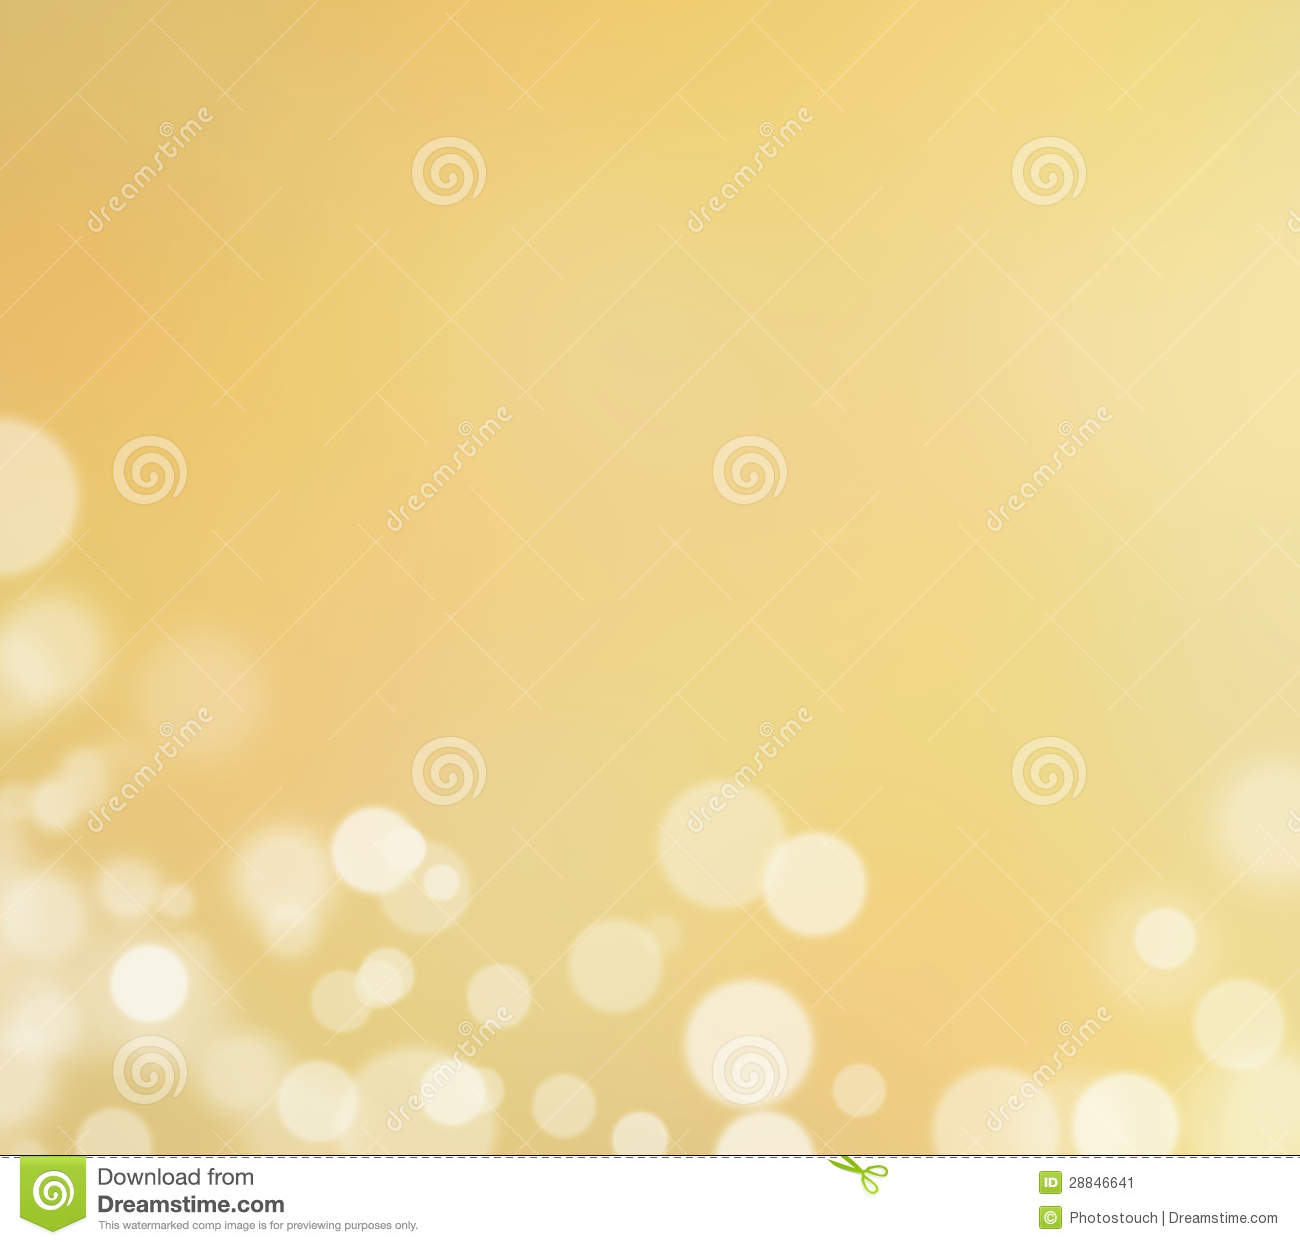 soft color background stock illustration illustration of